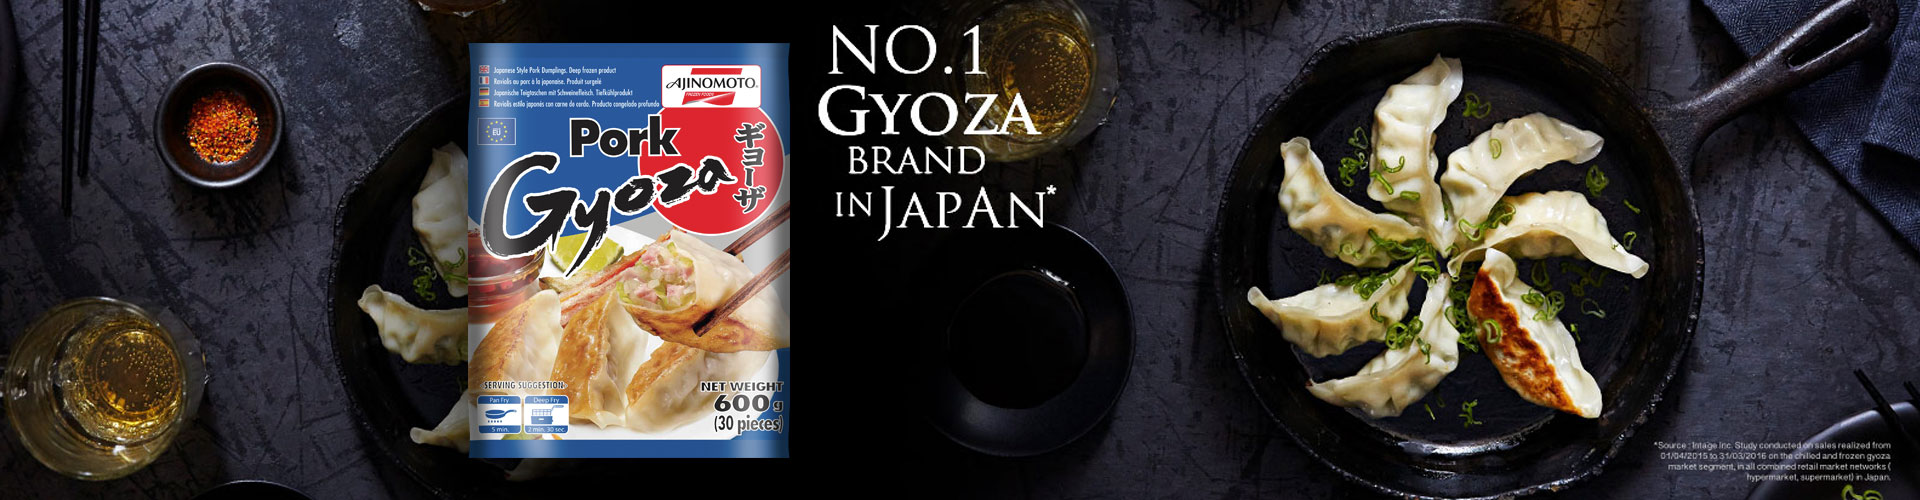 Ajinomoto Gyoza, No.1 Gyoza Brand in Japan